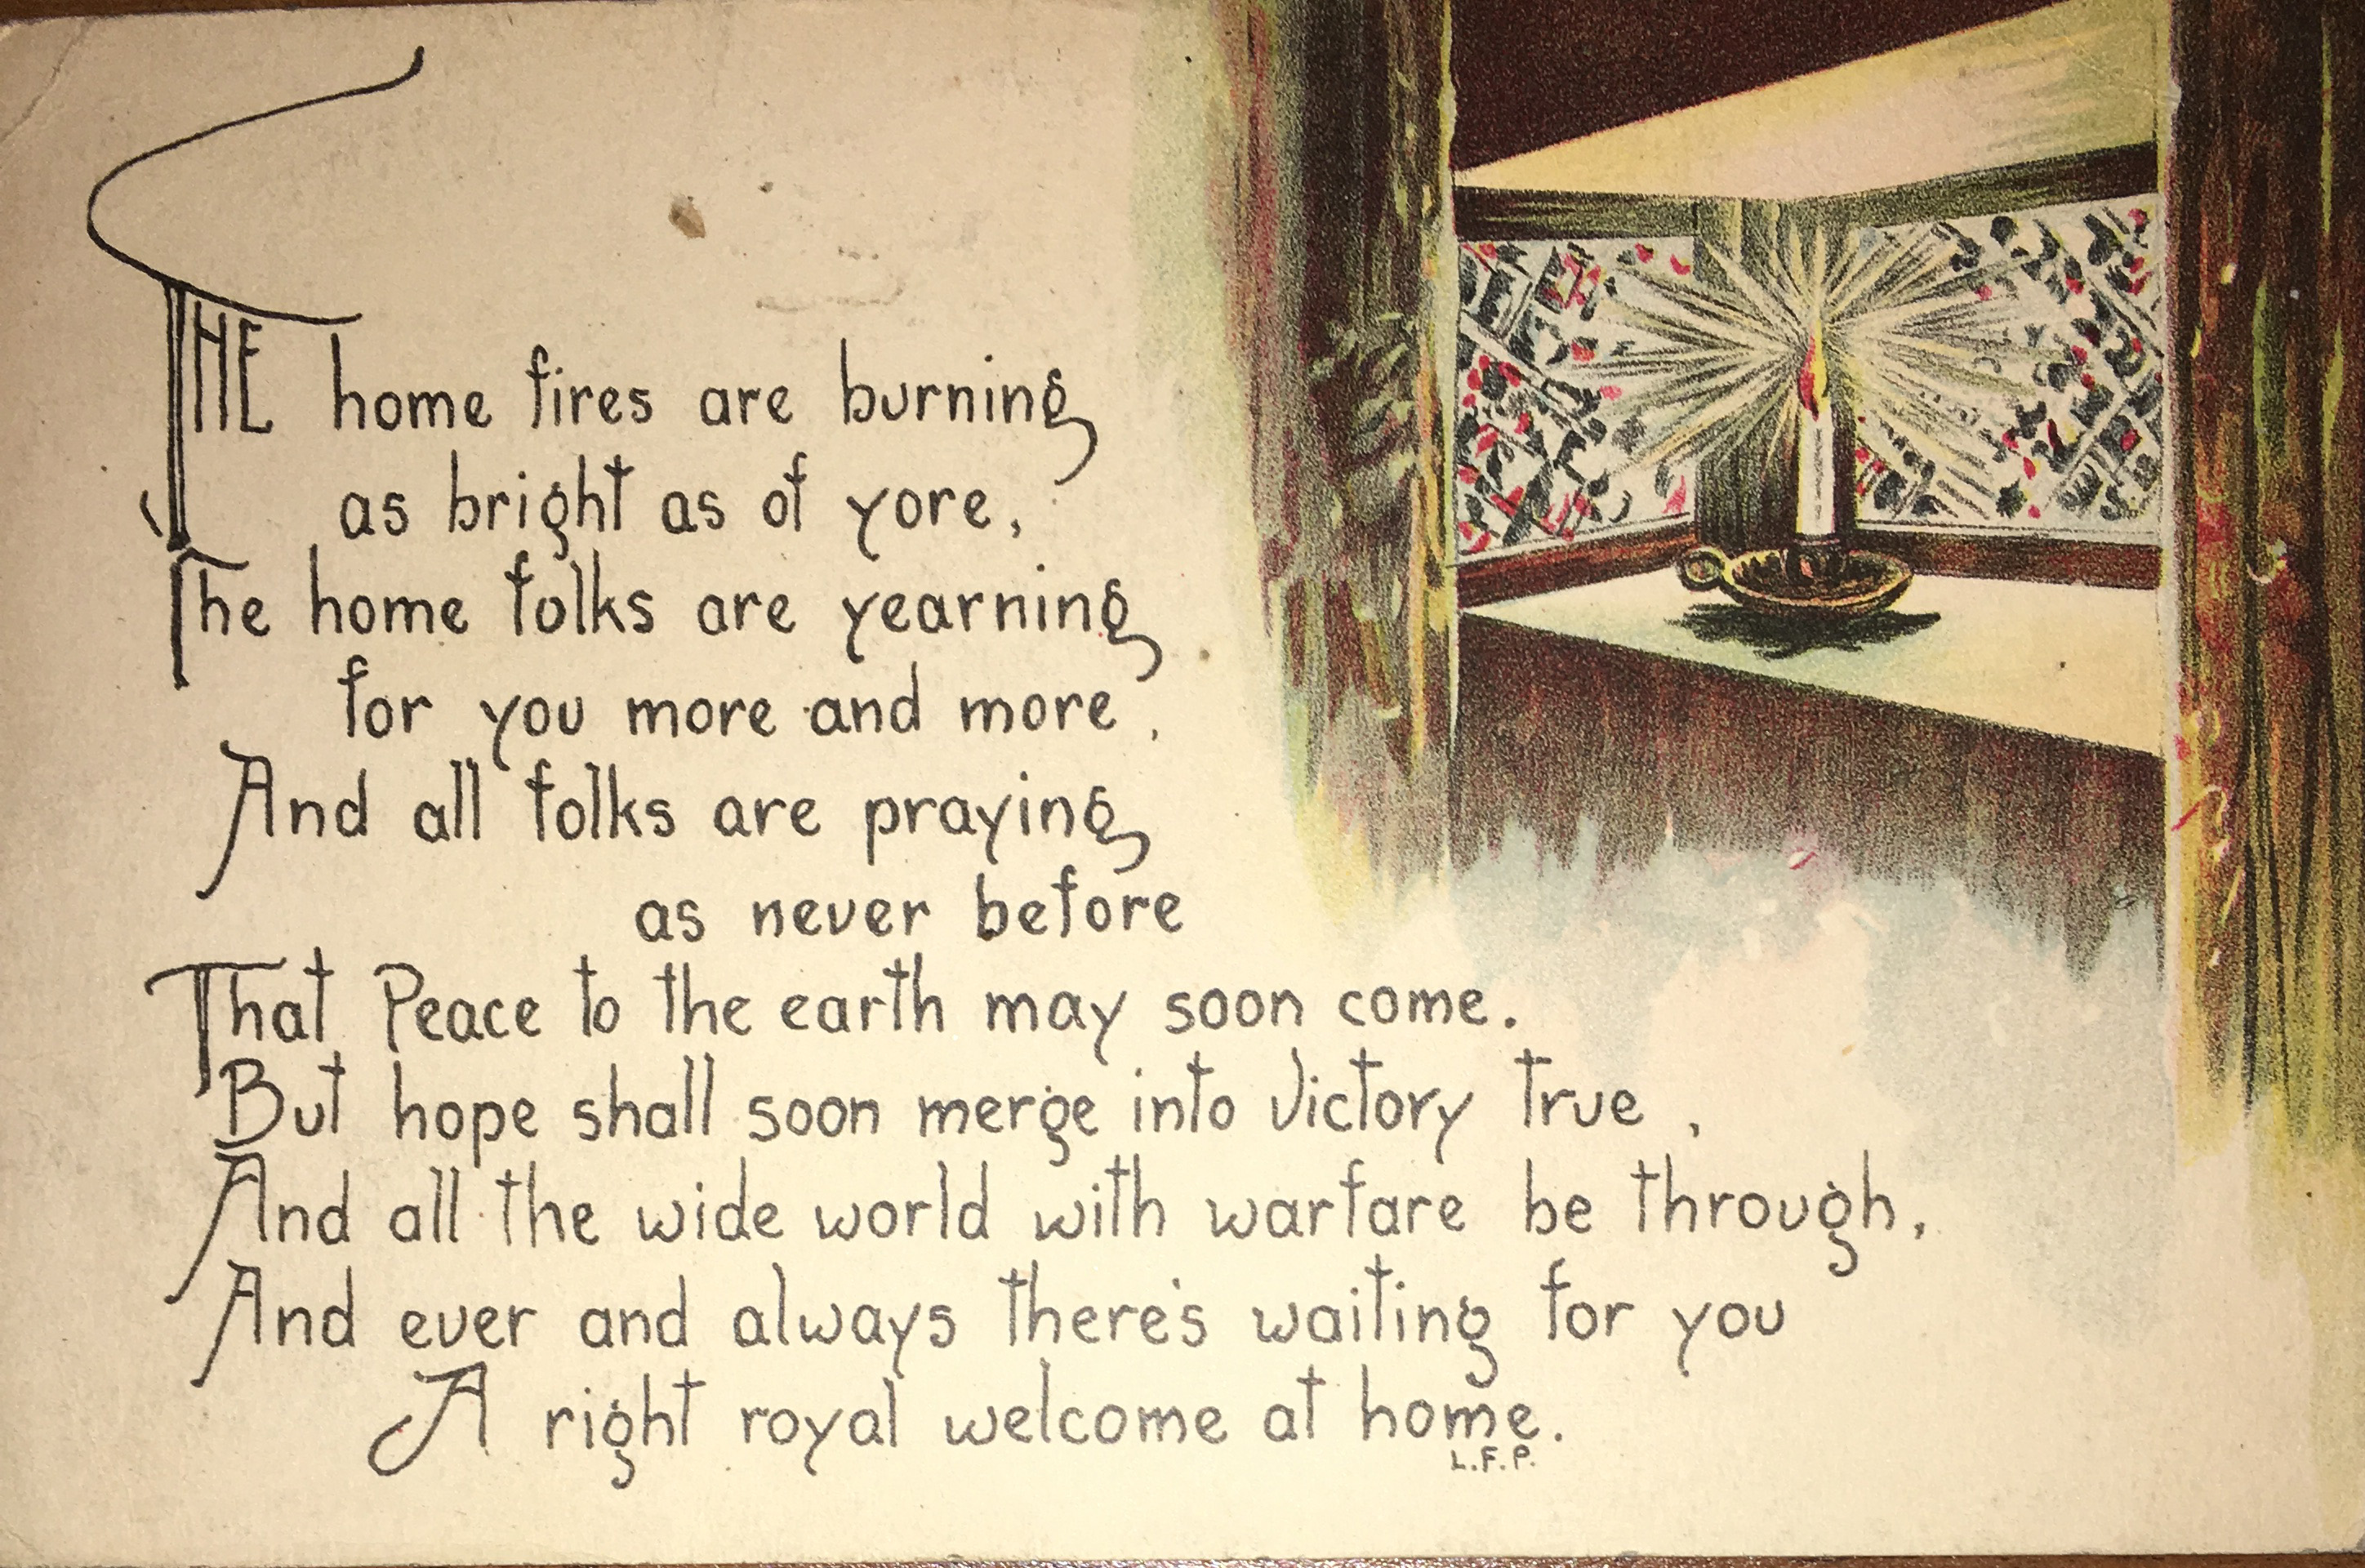 [Postcard front] The home fires are burning